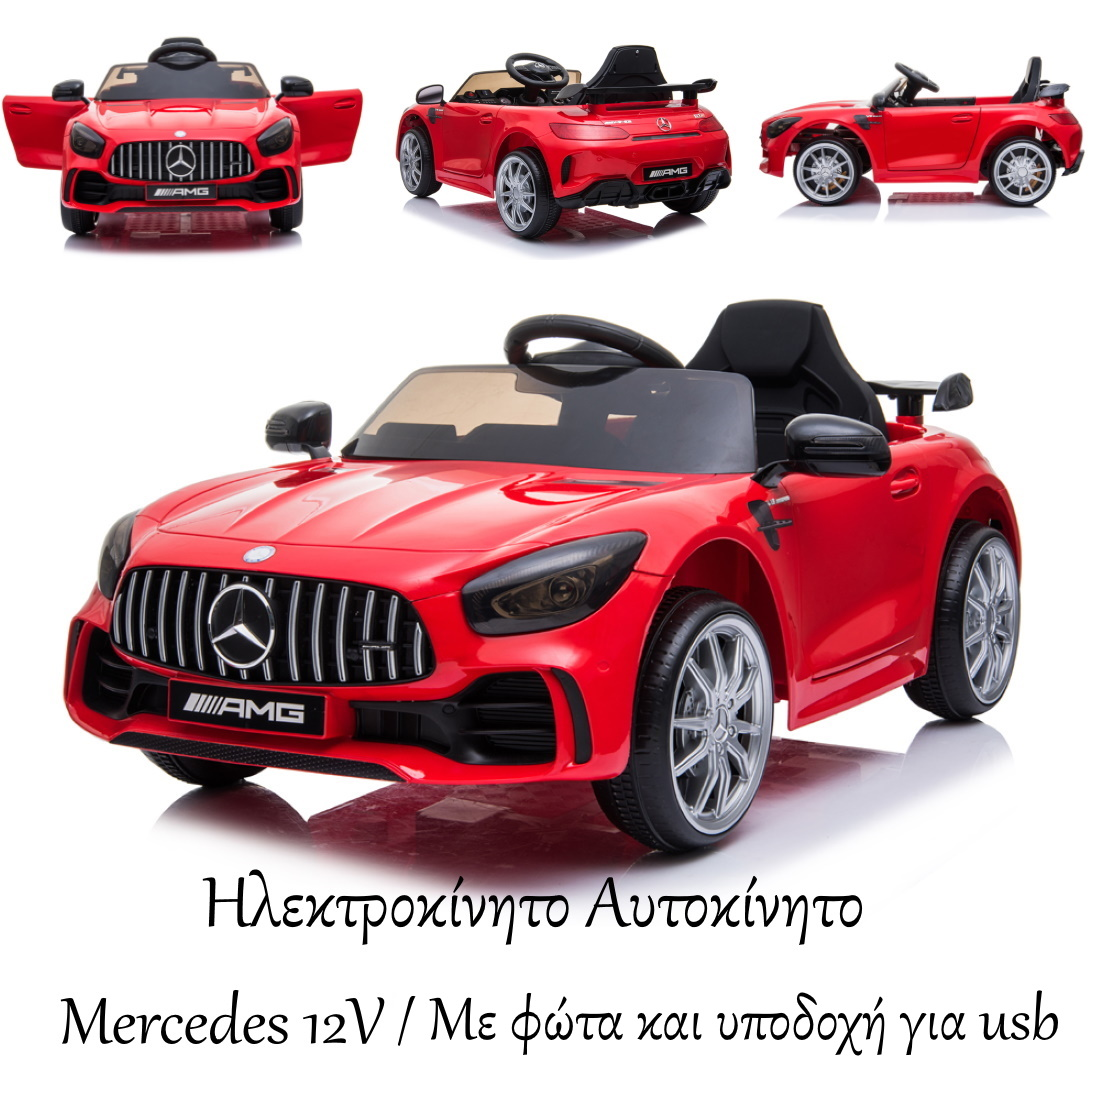 edit-PICTURE-NEW1-Mercedes-12V-Benz-Gtr-Spor-Coope-Red